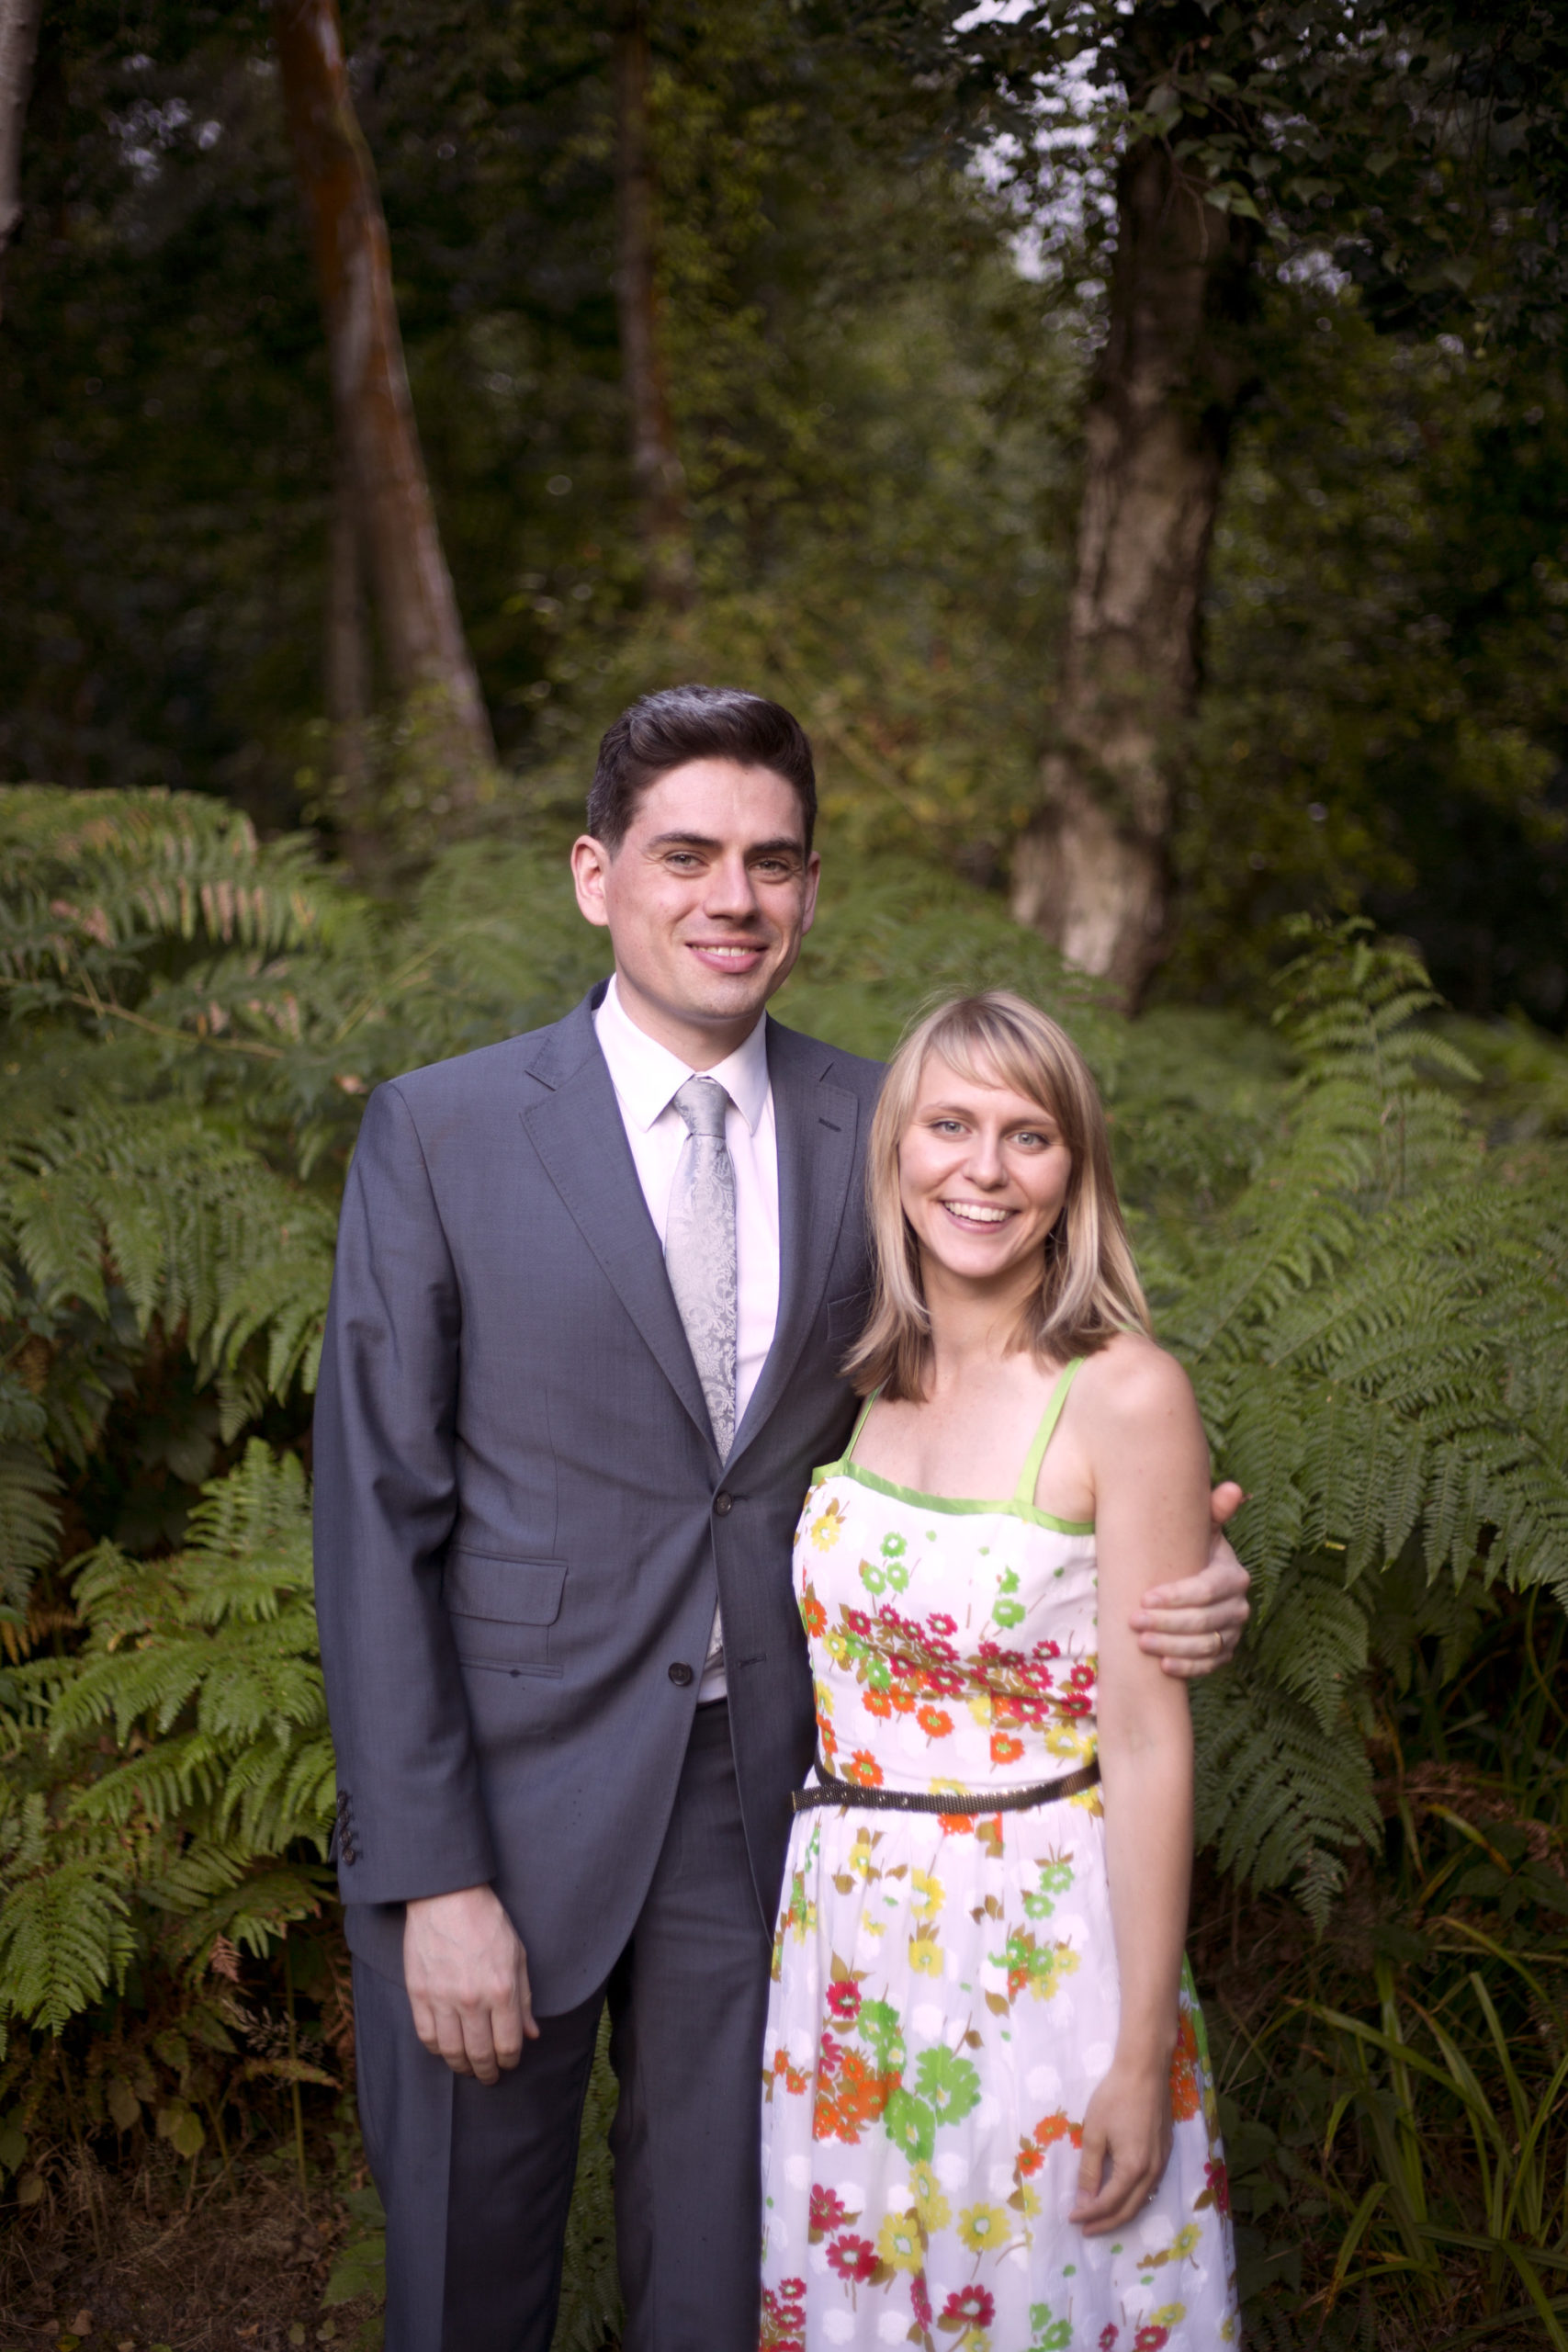 Wedding guests smile in front of ferns at Cuffley camp outdoor woodland wedding photographer